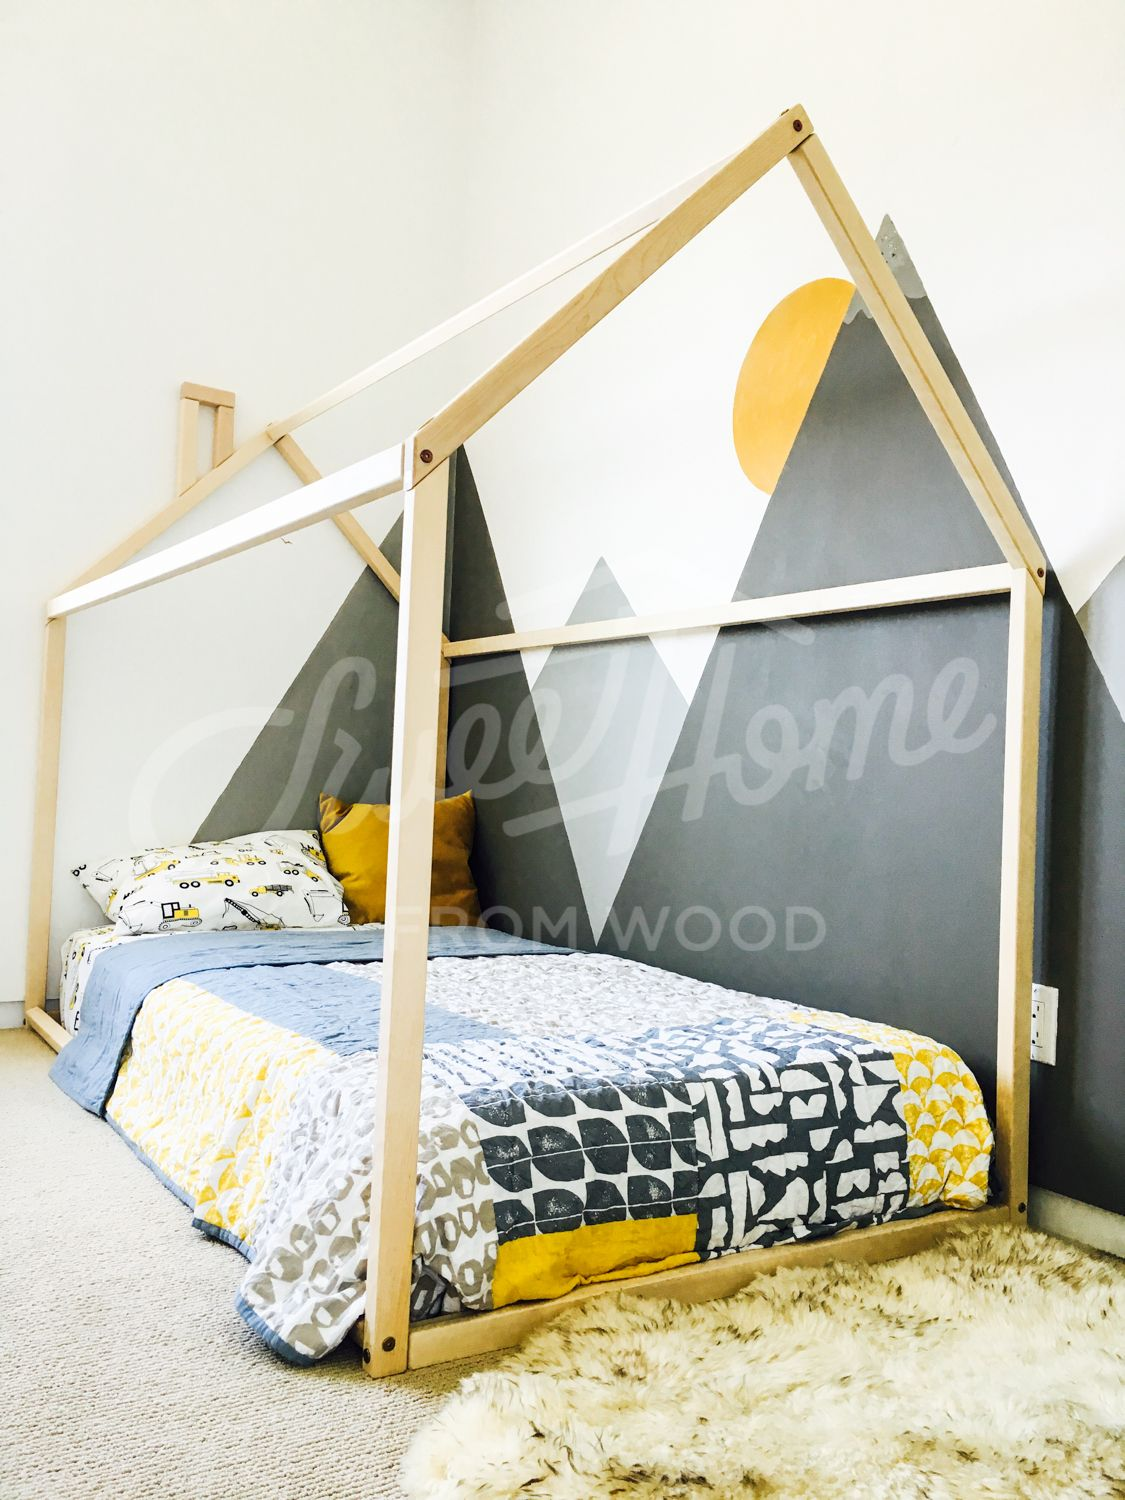 Toddler Bed House Bed Children Bed Wooden House Tent Bed Wood House Wood Nursery Kids Teepee Bed Wood Bed Frame Wood House Bed Kids Gift House Beds House Frame Bed Bed